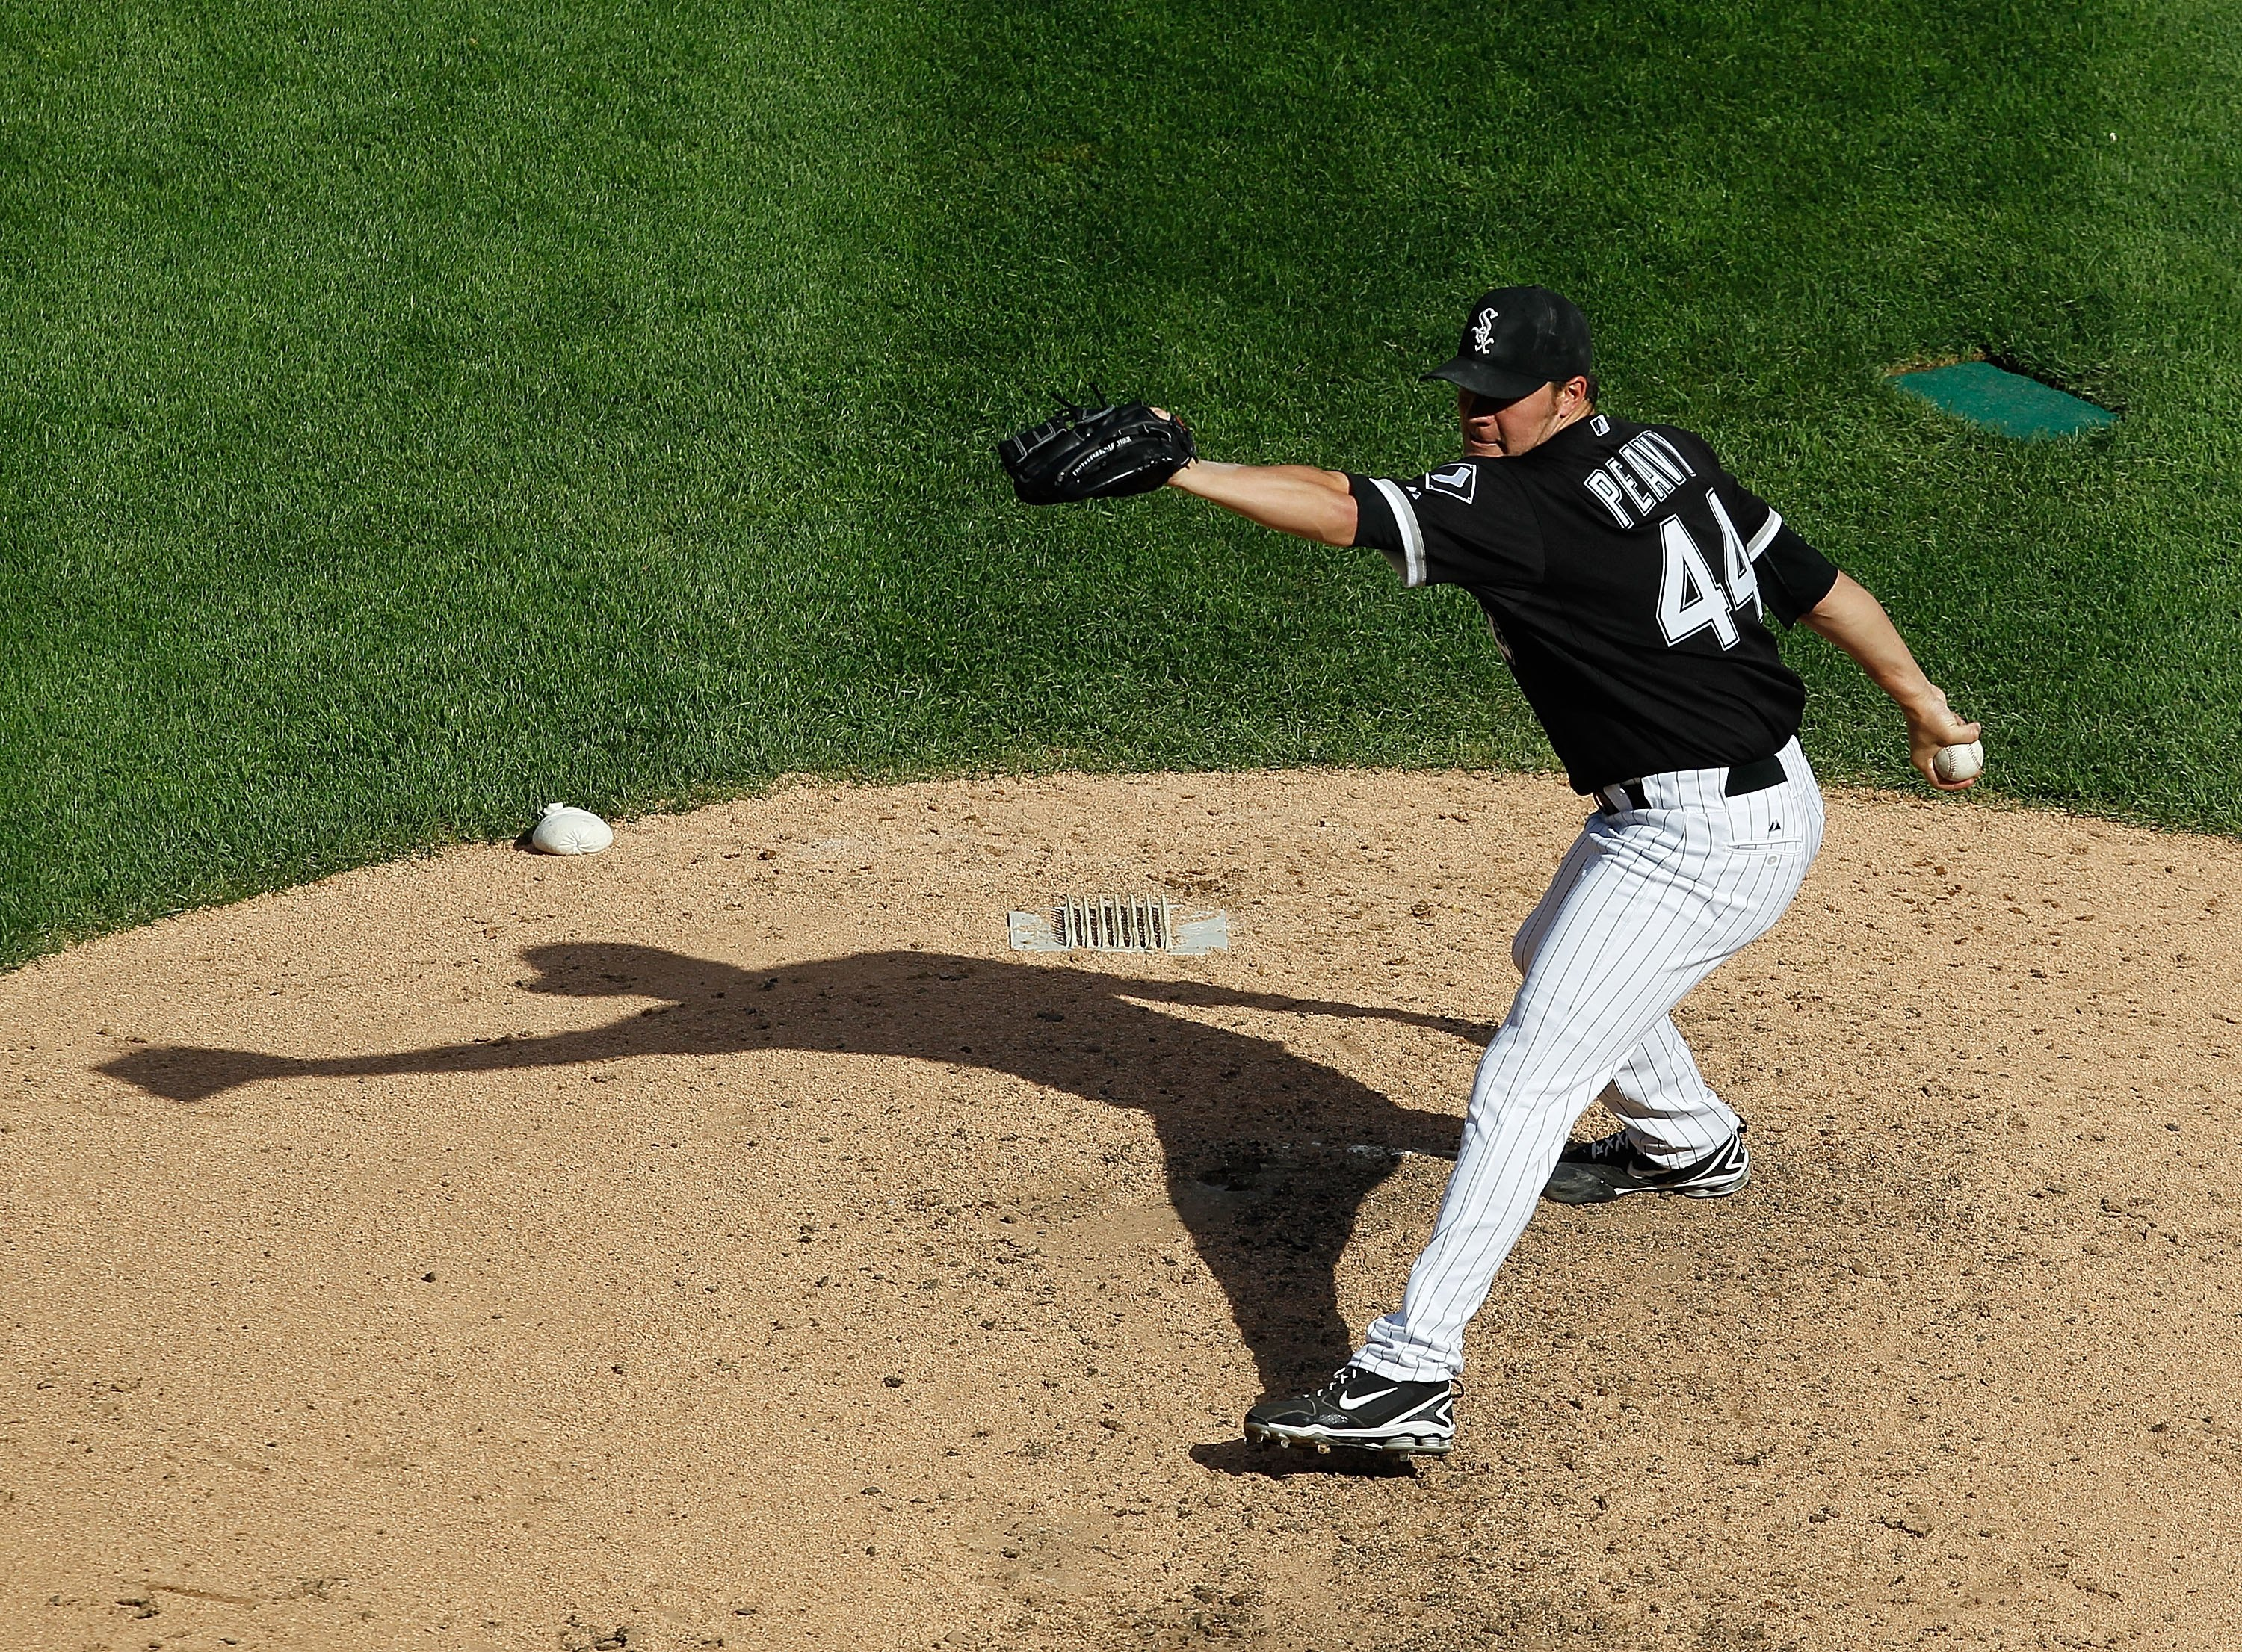 CHICAGO - JUNE 25: Starting pitcher Jake Peavy #44 of the Chicago White Sox delivers the ball against the Chicago Cubs at U.S. Cellular Field on June 25, 2010 in Chicago, Illinois. The White Sox defeated the Cubs 6-0. (Photo by Jonathan Daniel/Getty Image